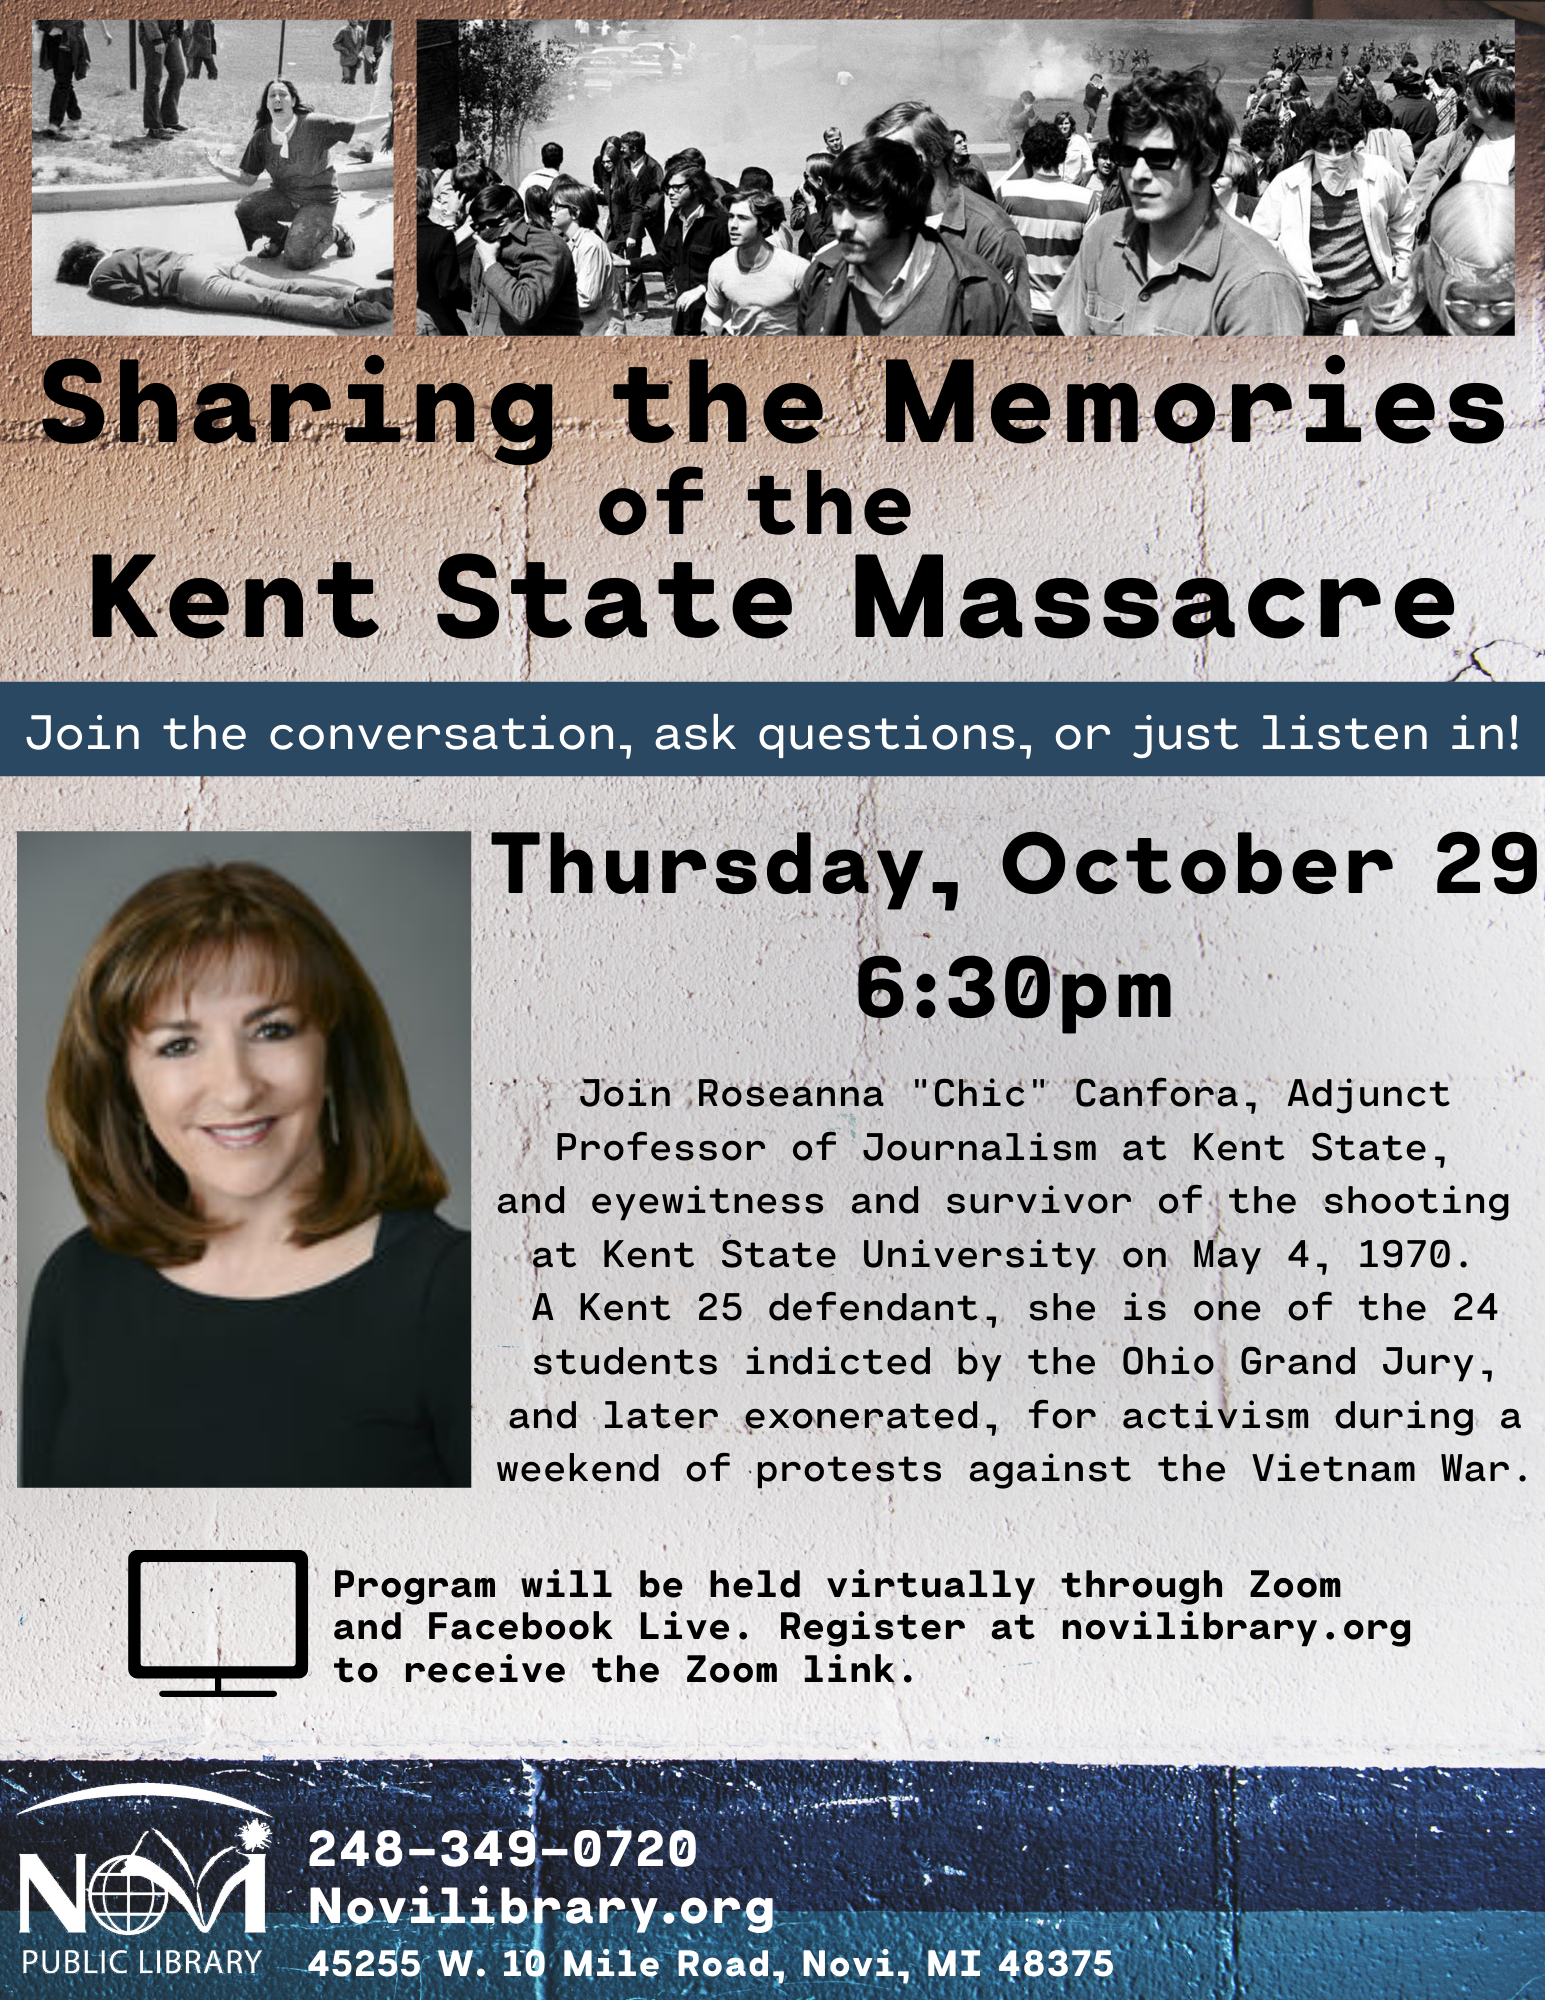 Sharing the Memories of the Kent State Massacre